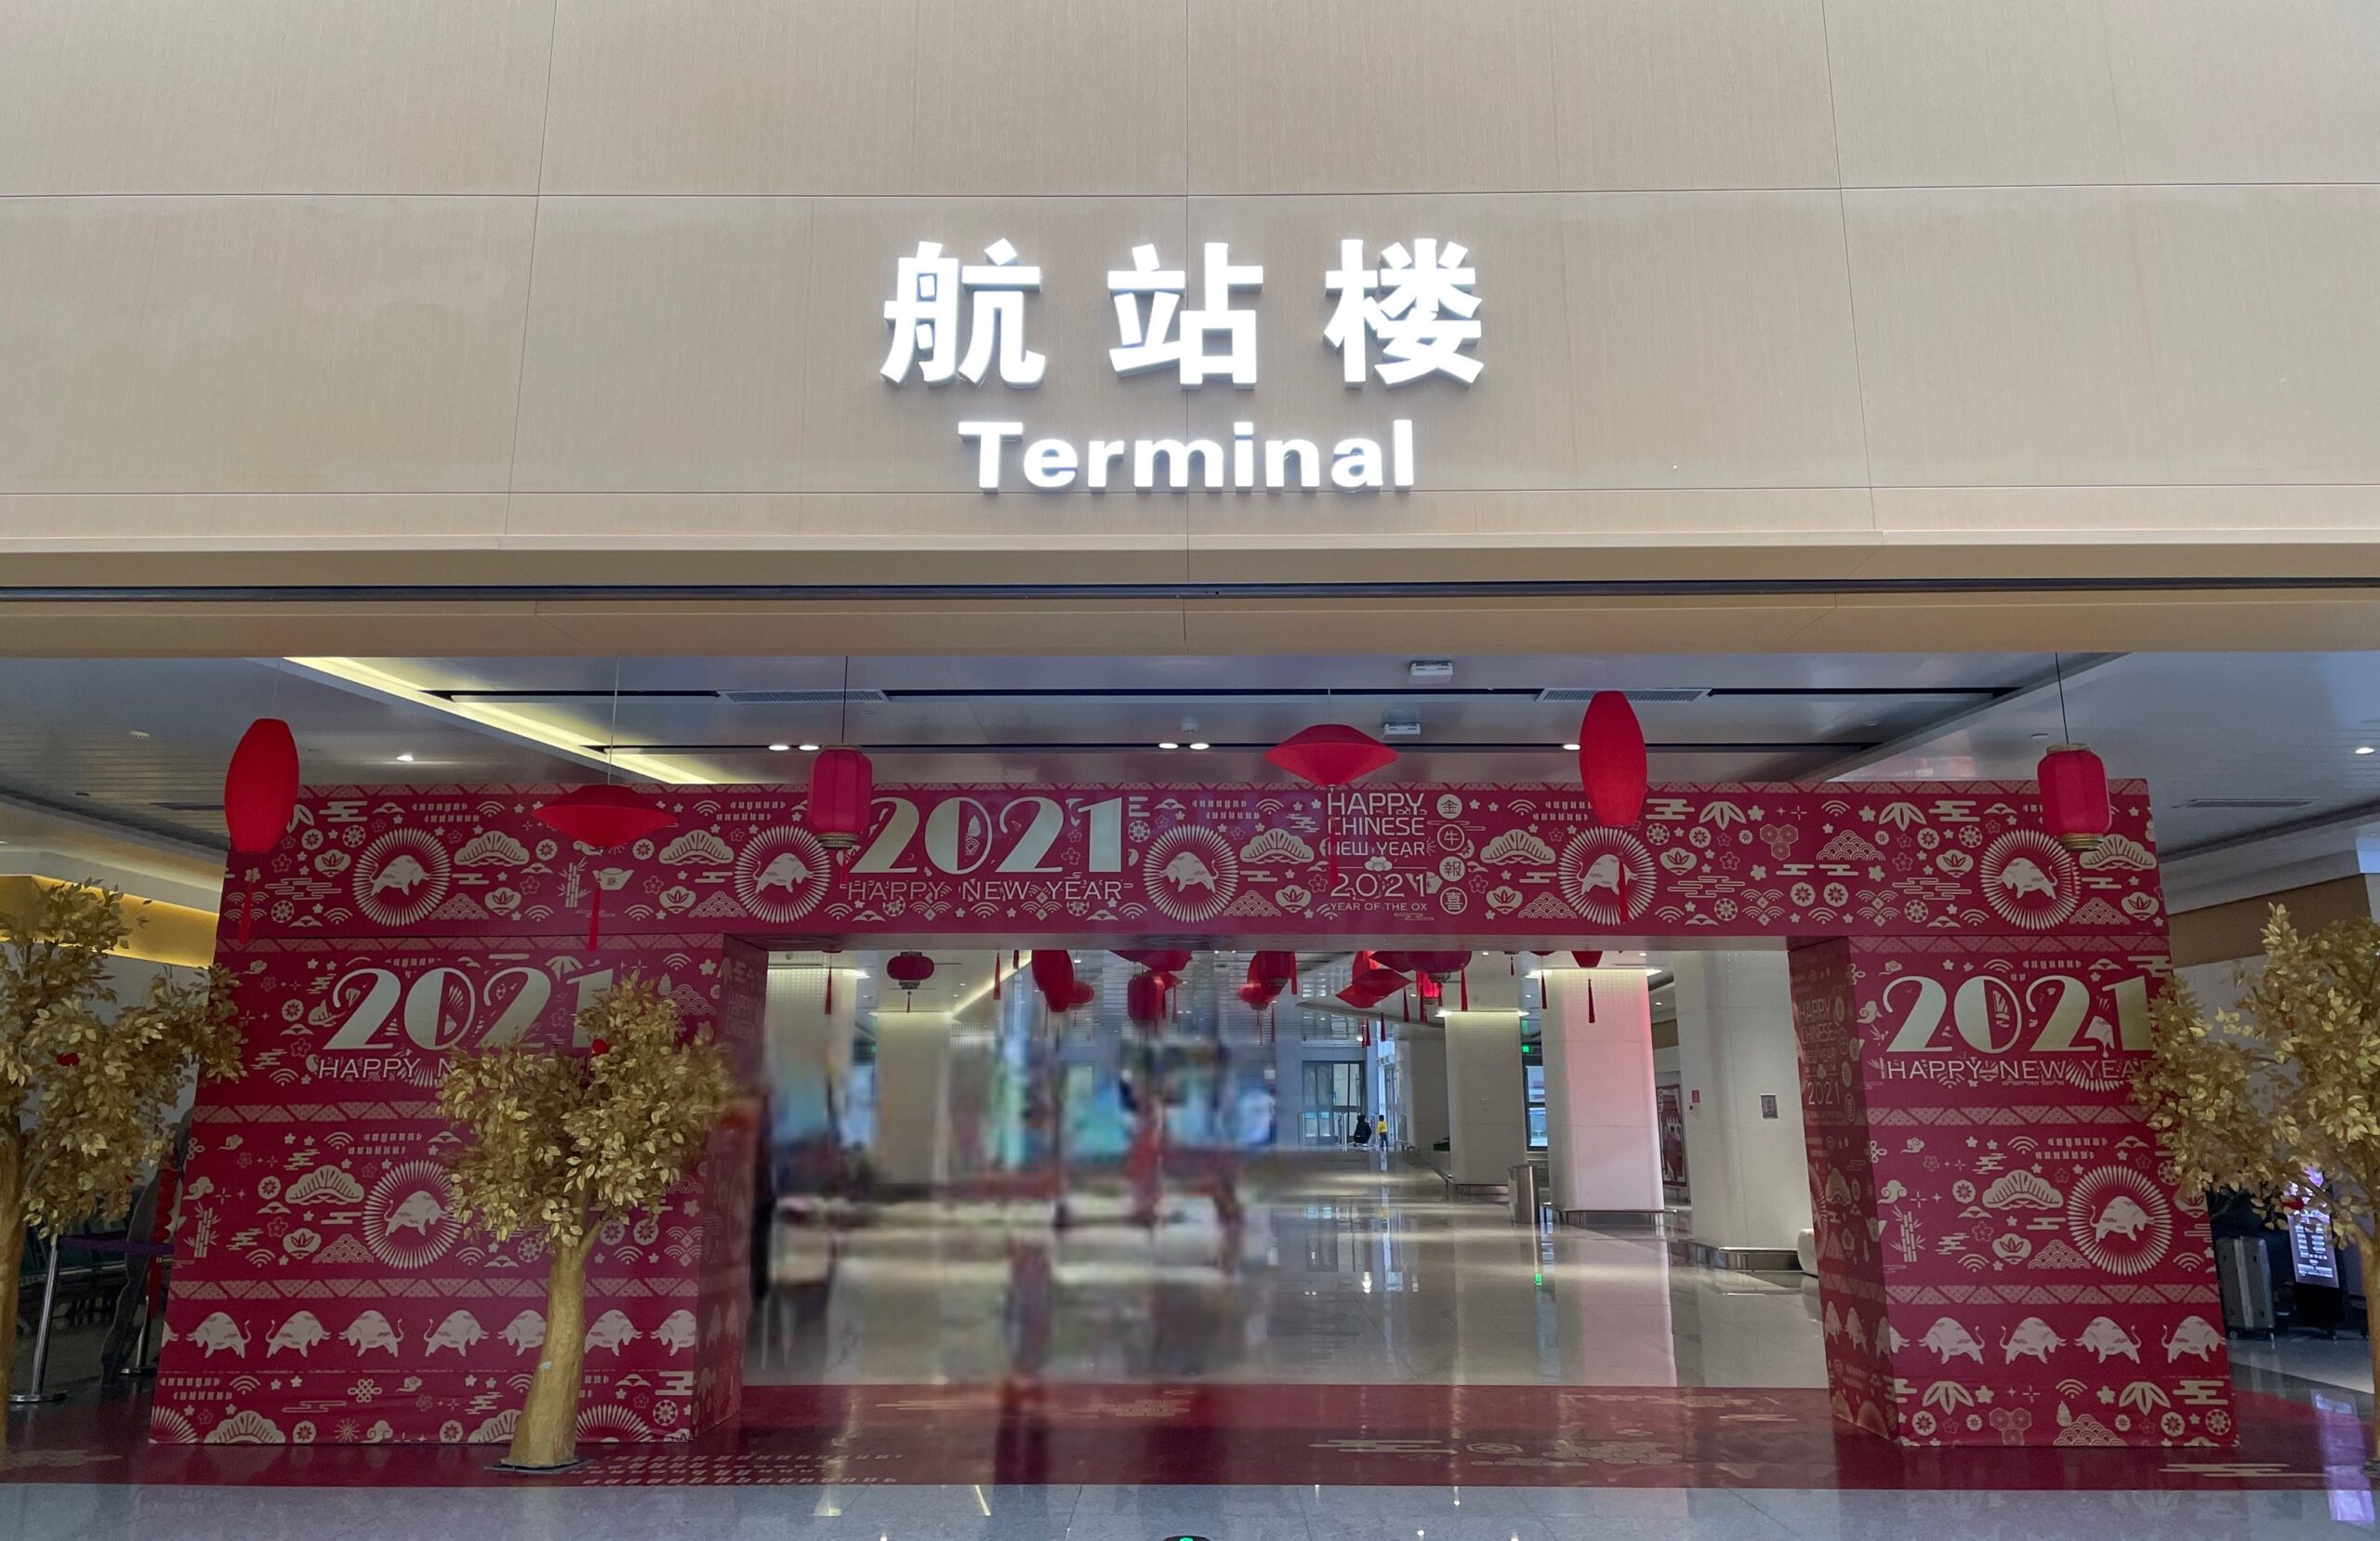 large red decorative archway in airport terminal